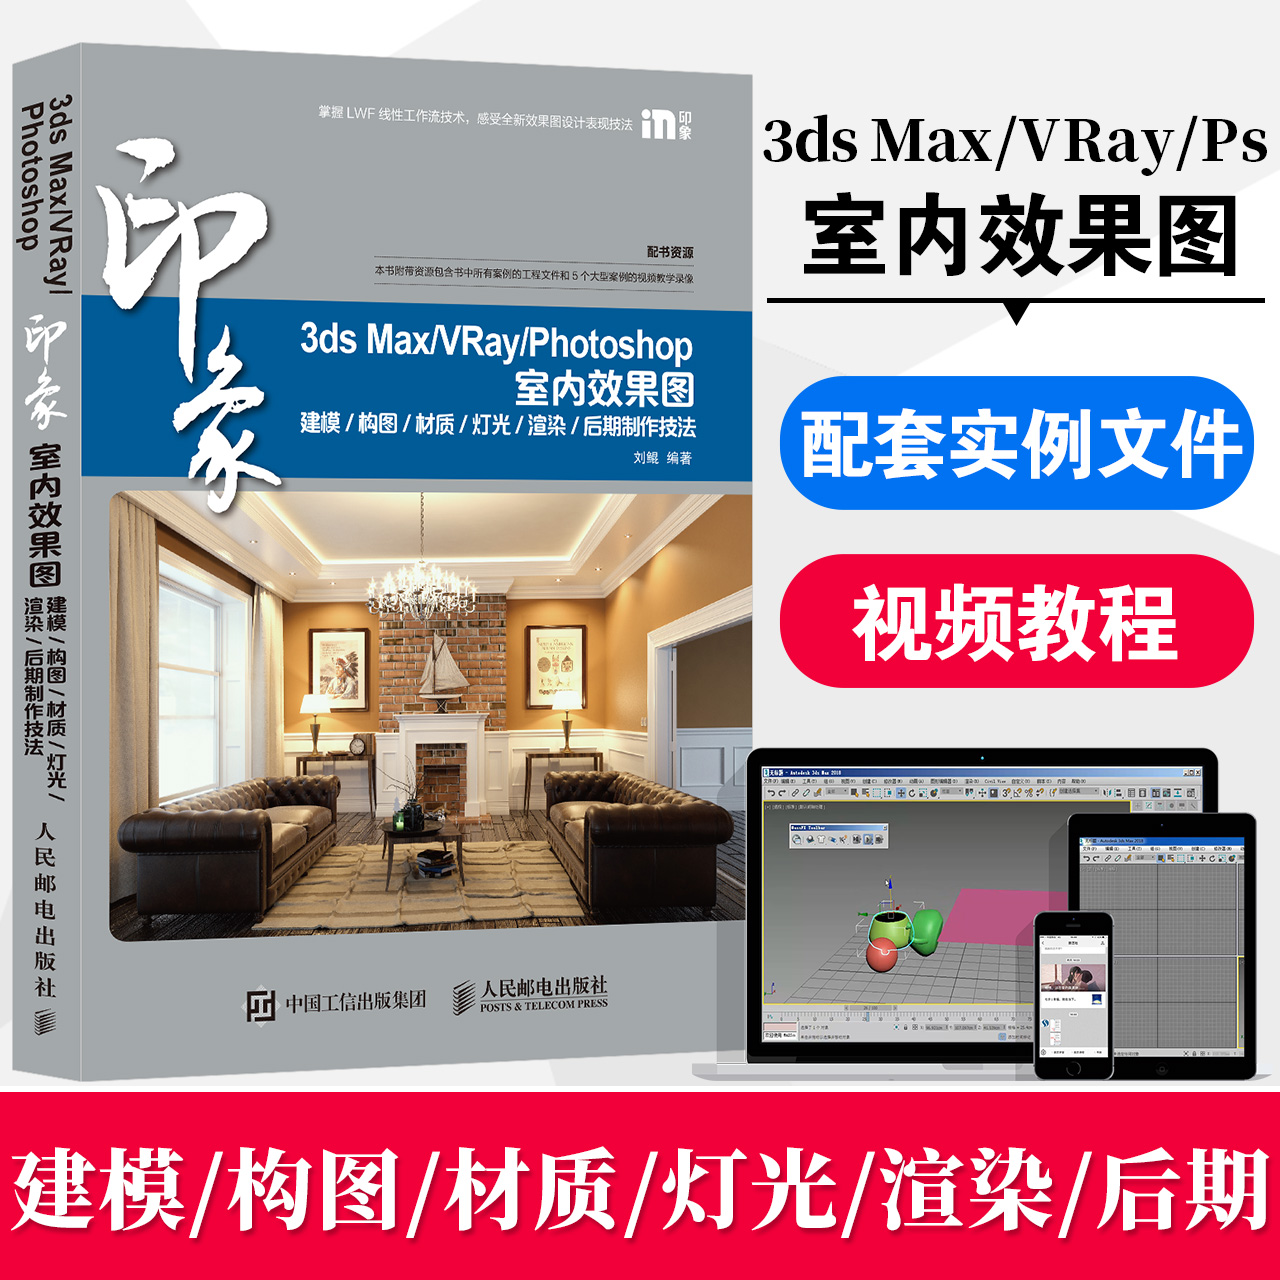 Usd 24 38 Genuine 3ds Max Vray Photoshop Impression Supra Image Modeling Composition Material Lighting Post Production Technique 3dmax Teaching Materials 3d Max Interior Design 3dmax Tutorial Books Wholesale From China Online Shopping